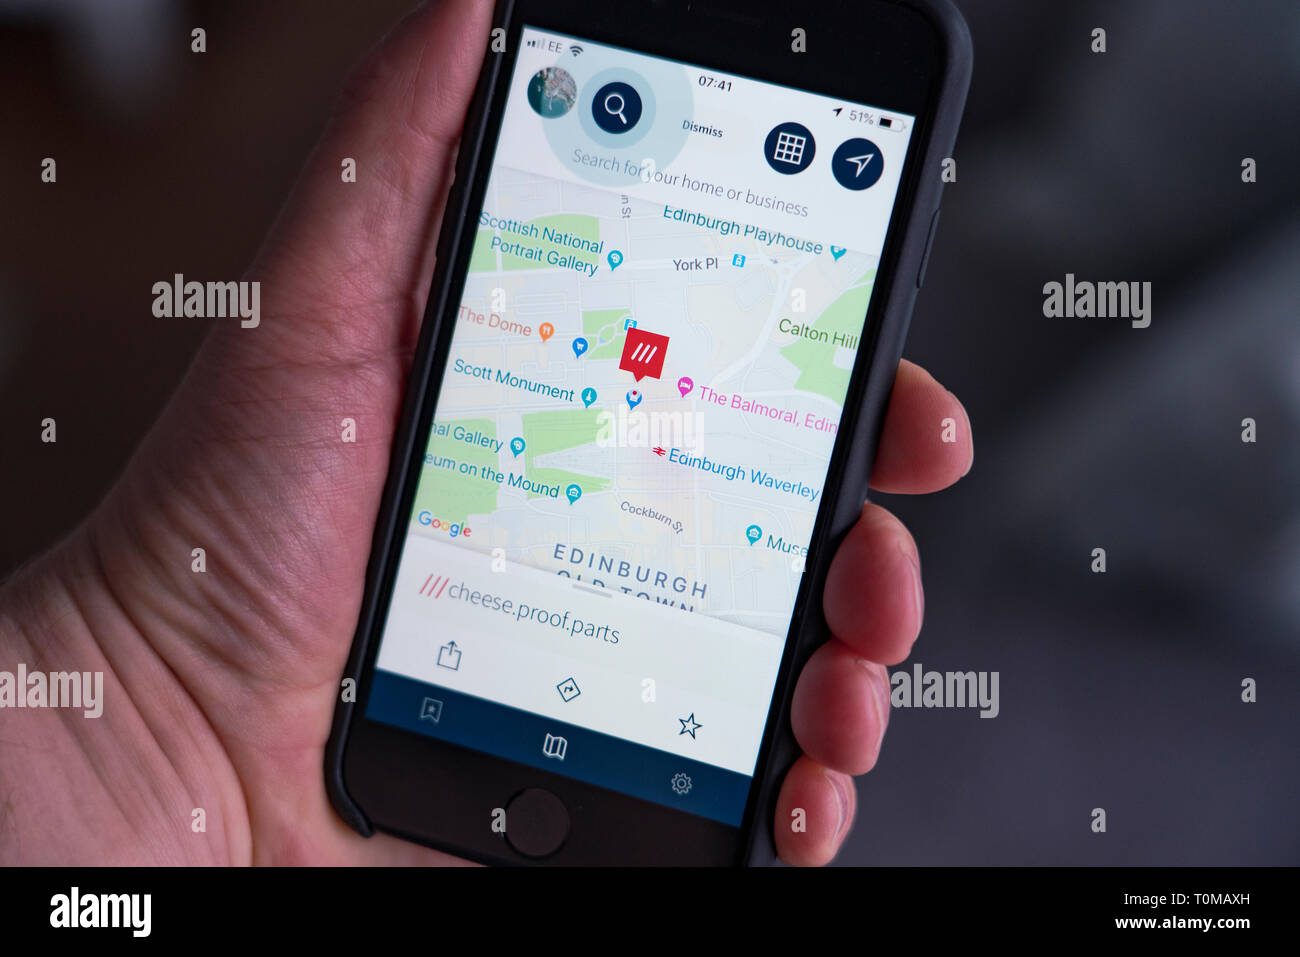 Person using What3words app on phone to locate position  The